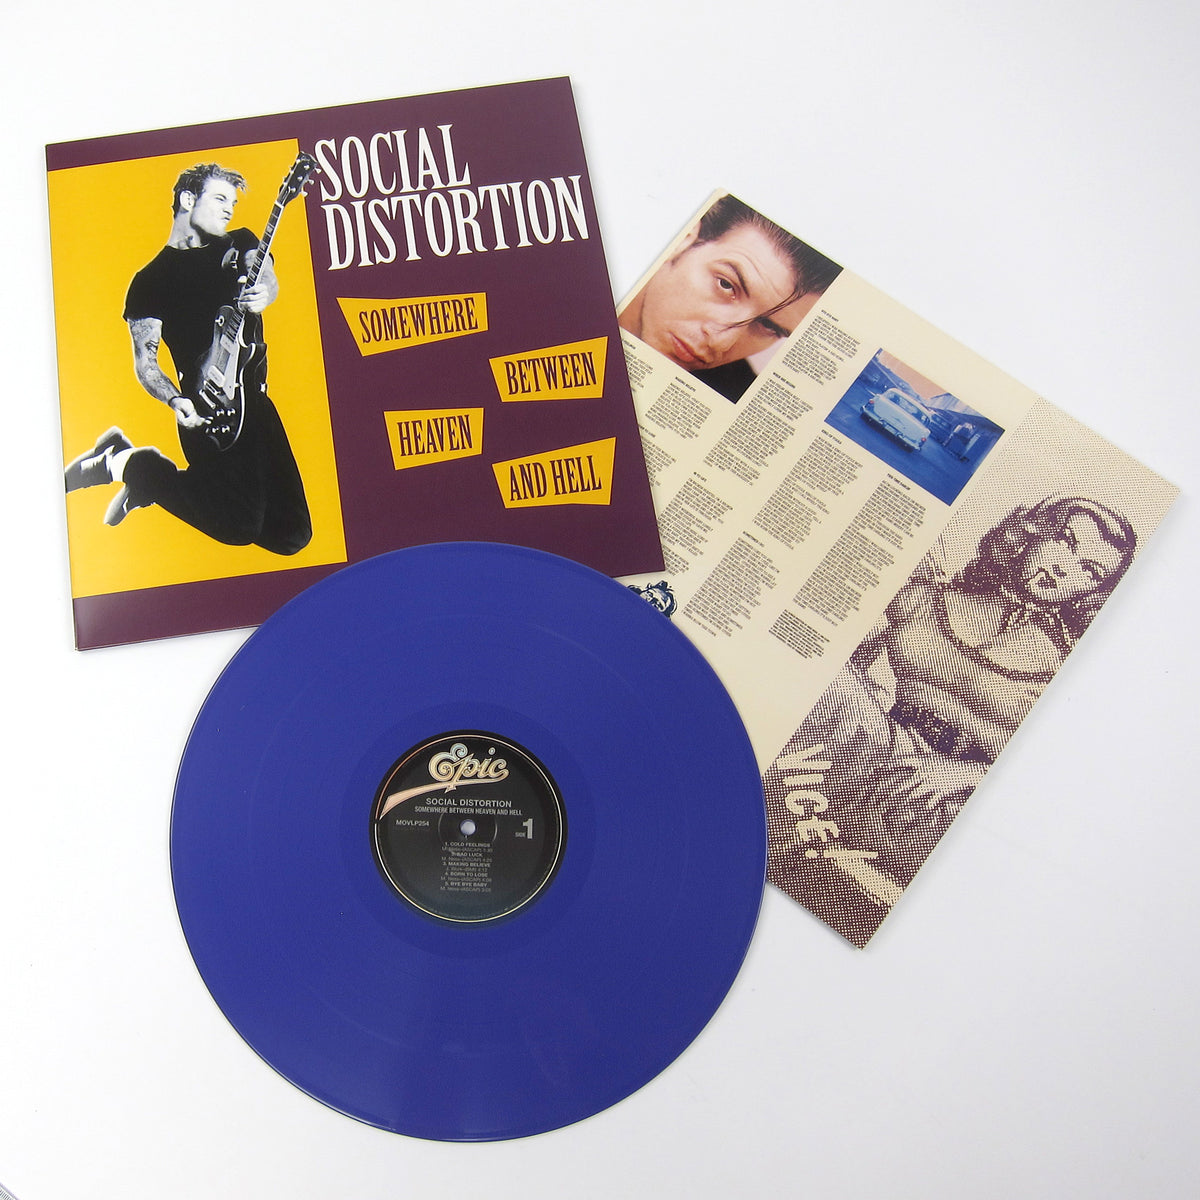 Social Distortion: Somewhere Between Heaven And Hell (Music On Vinyl 180g, Colored Vinyl) Vinyl LP